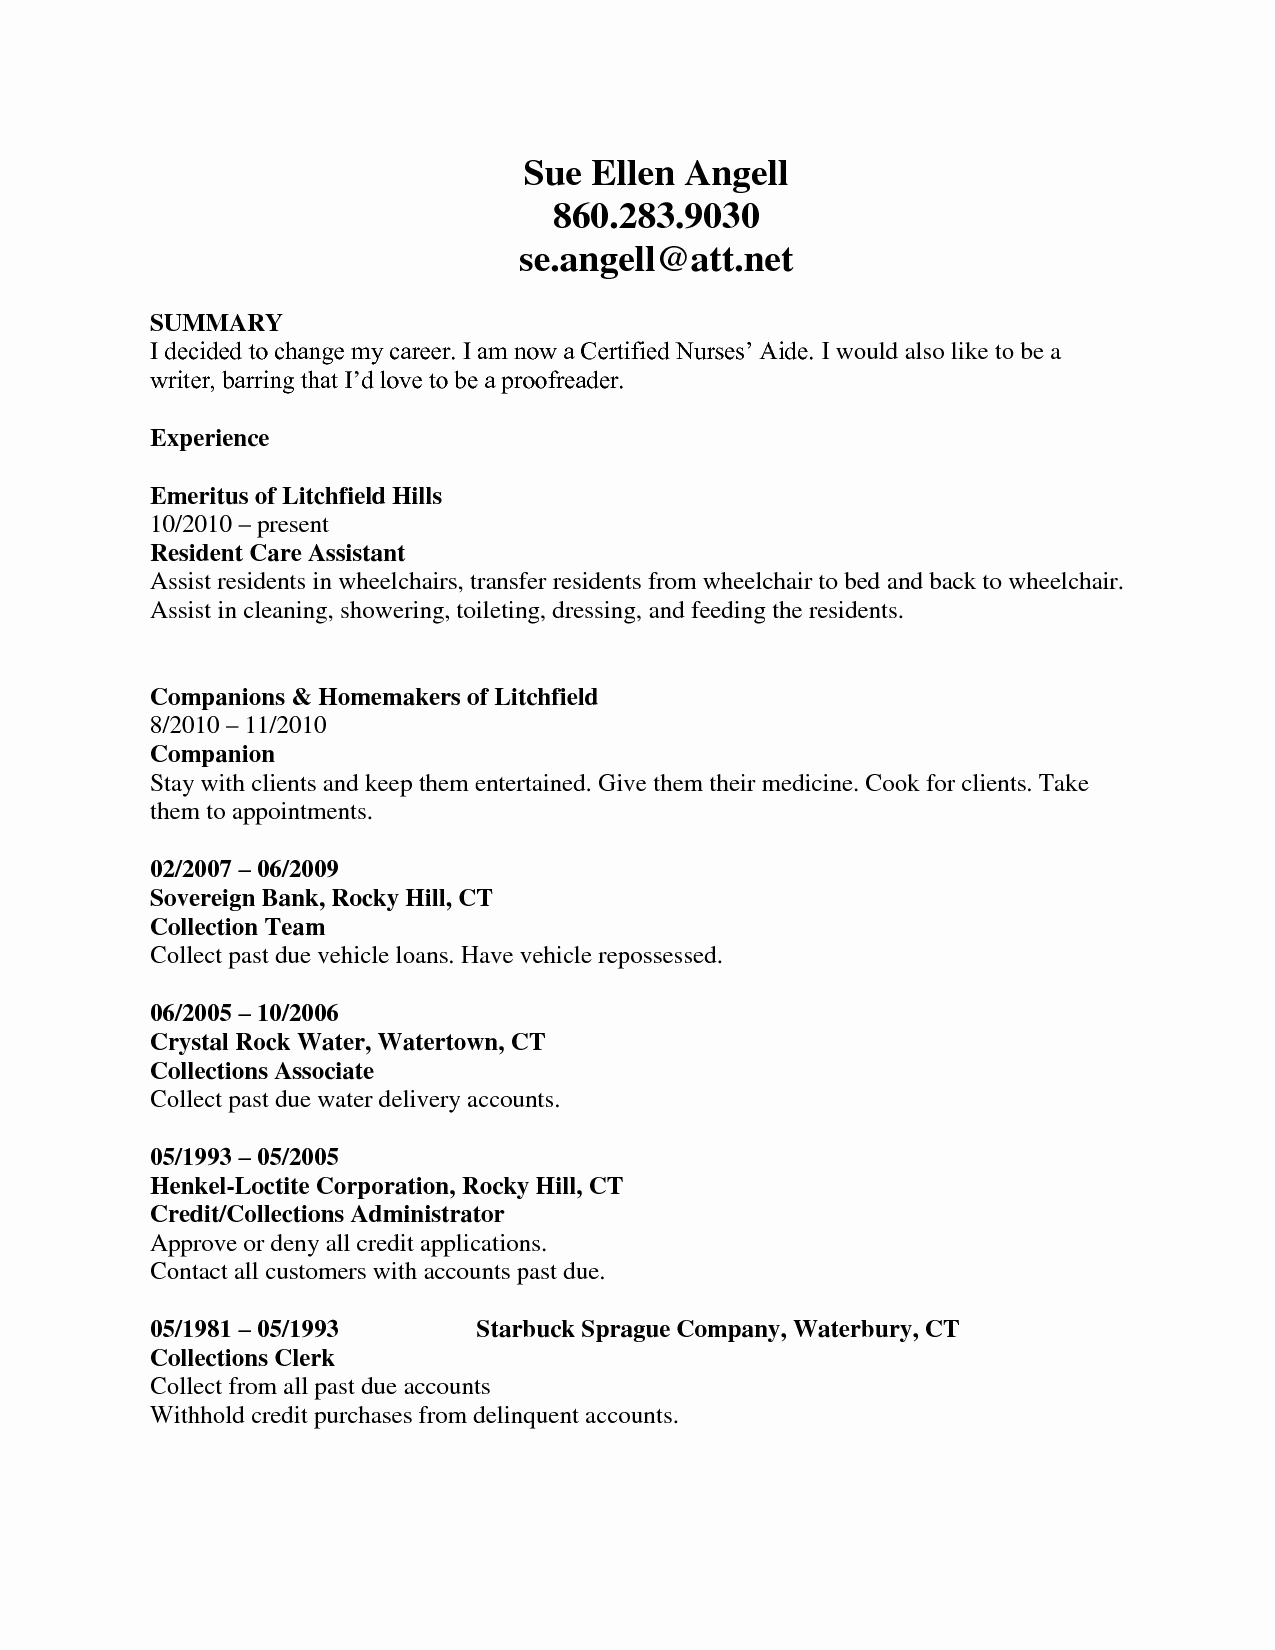 Free Cna Resume Templates Awesome Cna Resume Samples